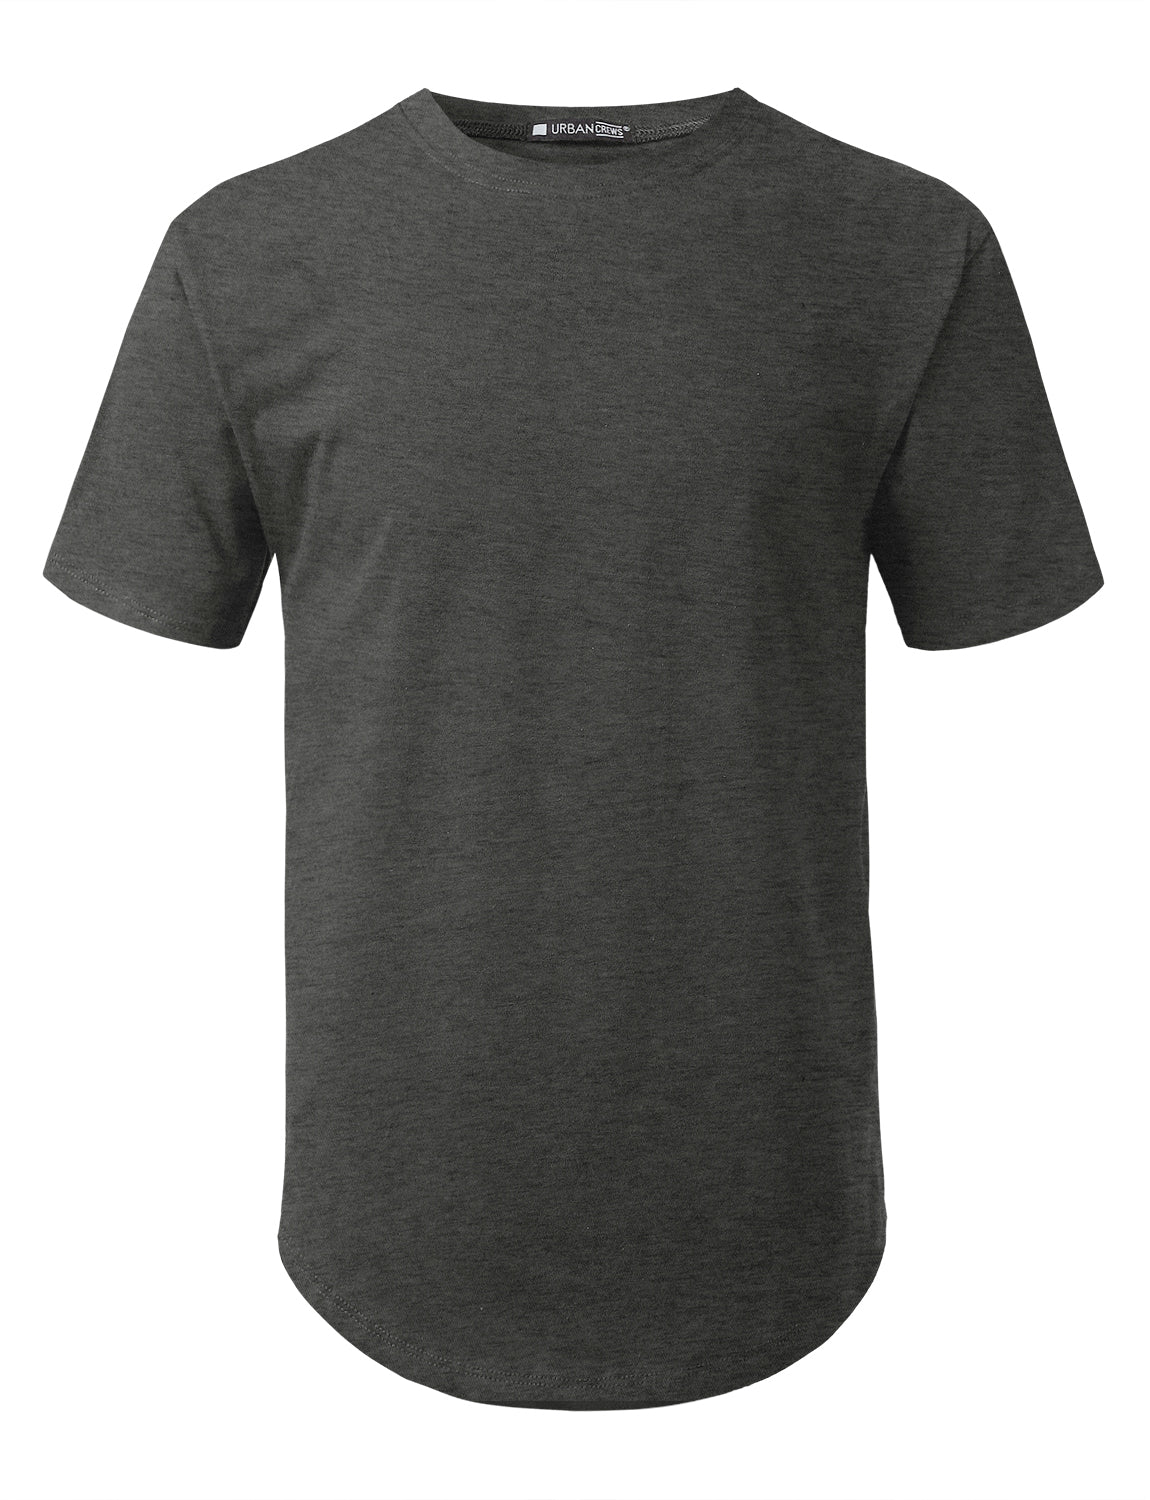 CHARCOAL Solid Color Cotton T-shirt - URBANCREWS